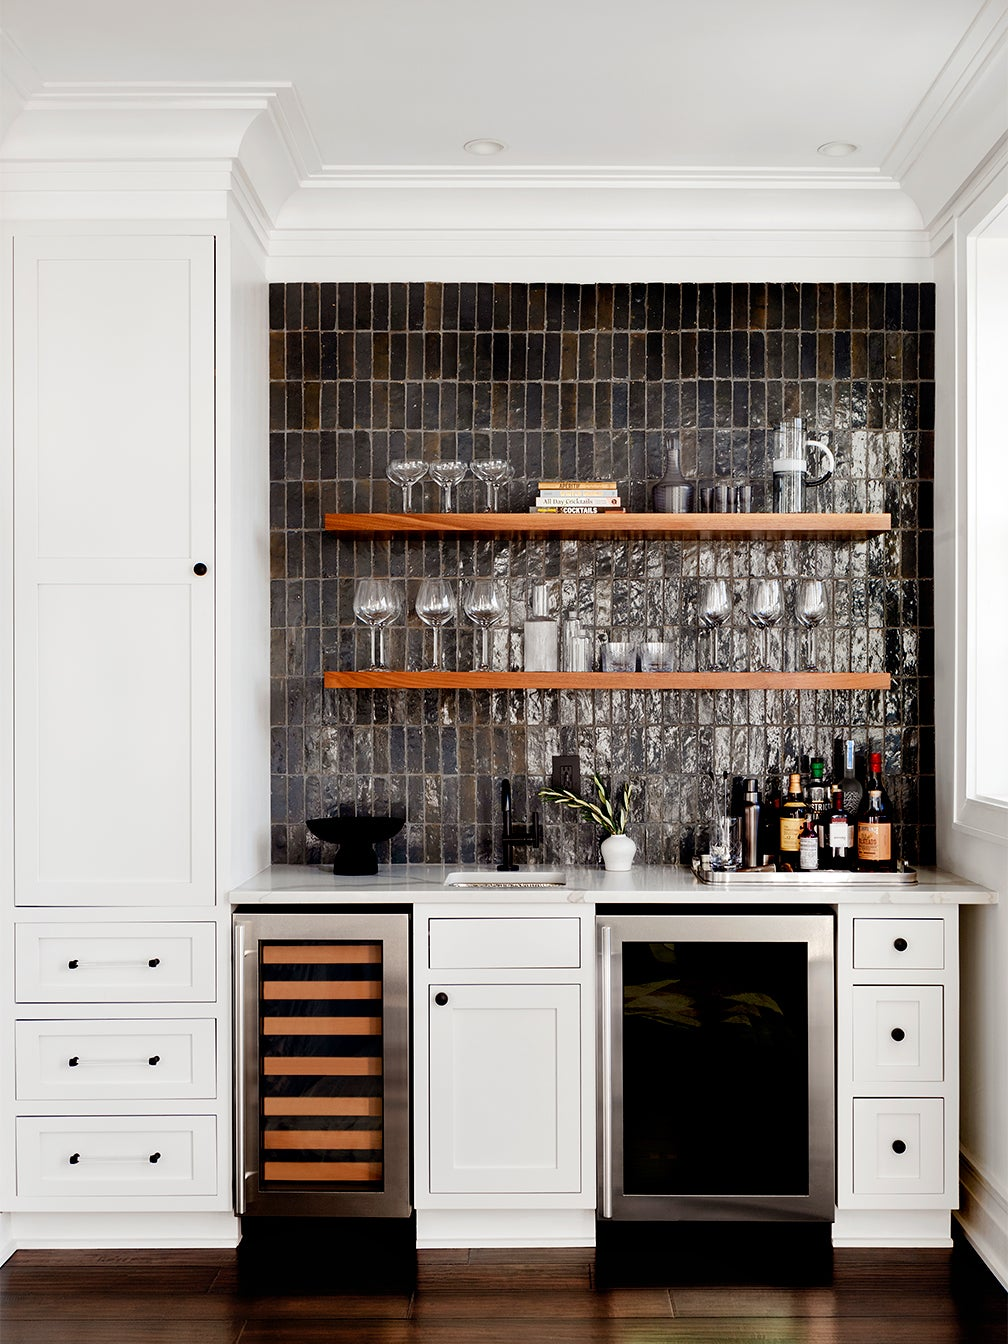 00-FEATURE-Georgetown-Rowhouse-Designed-Via-Zoom-domino